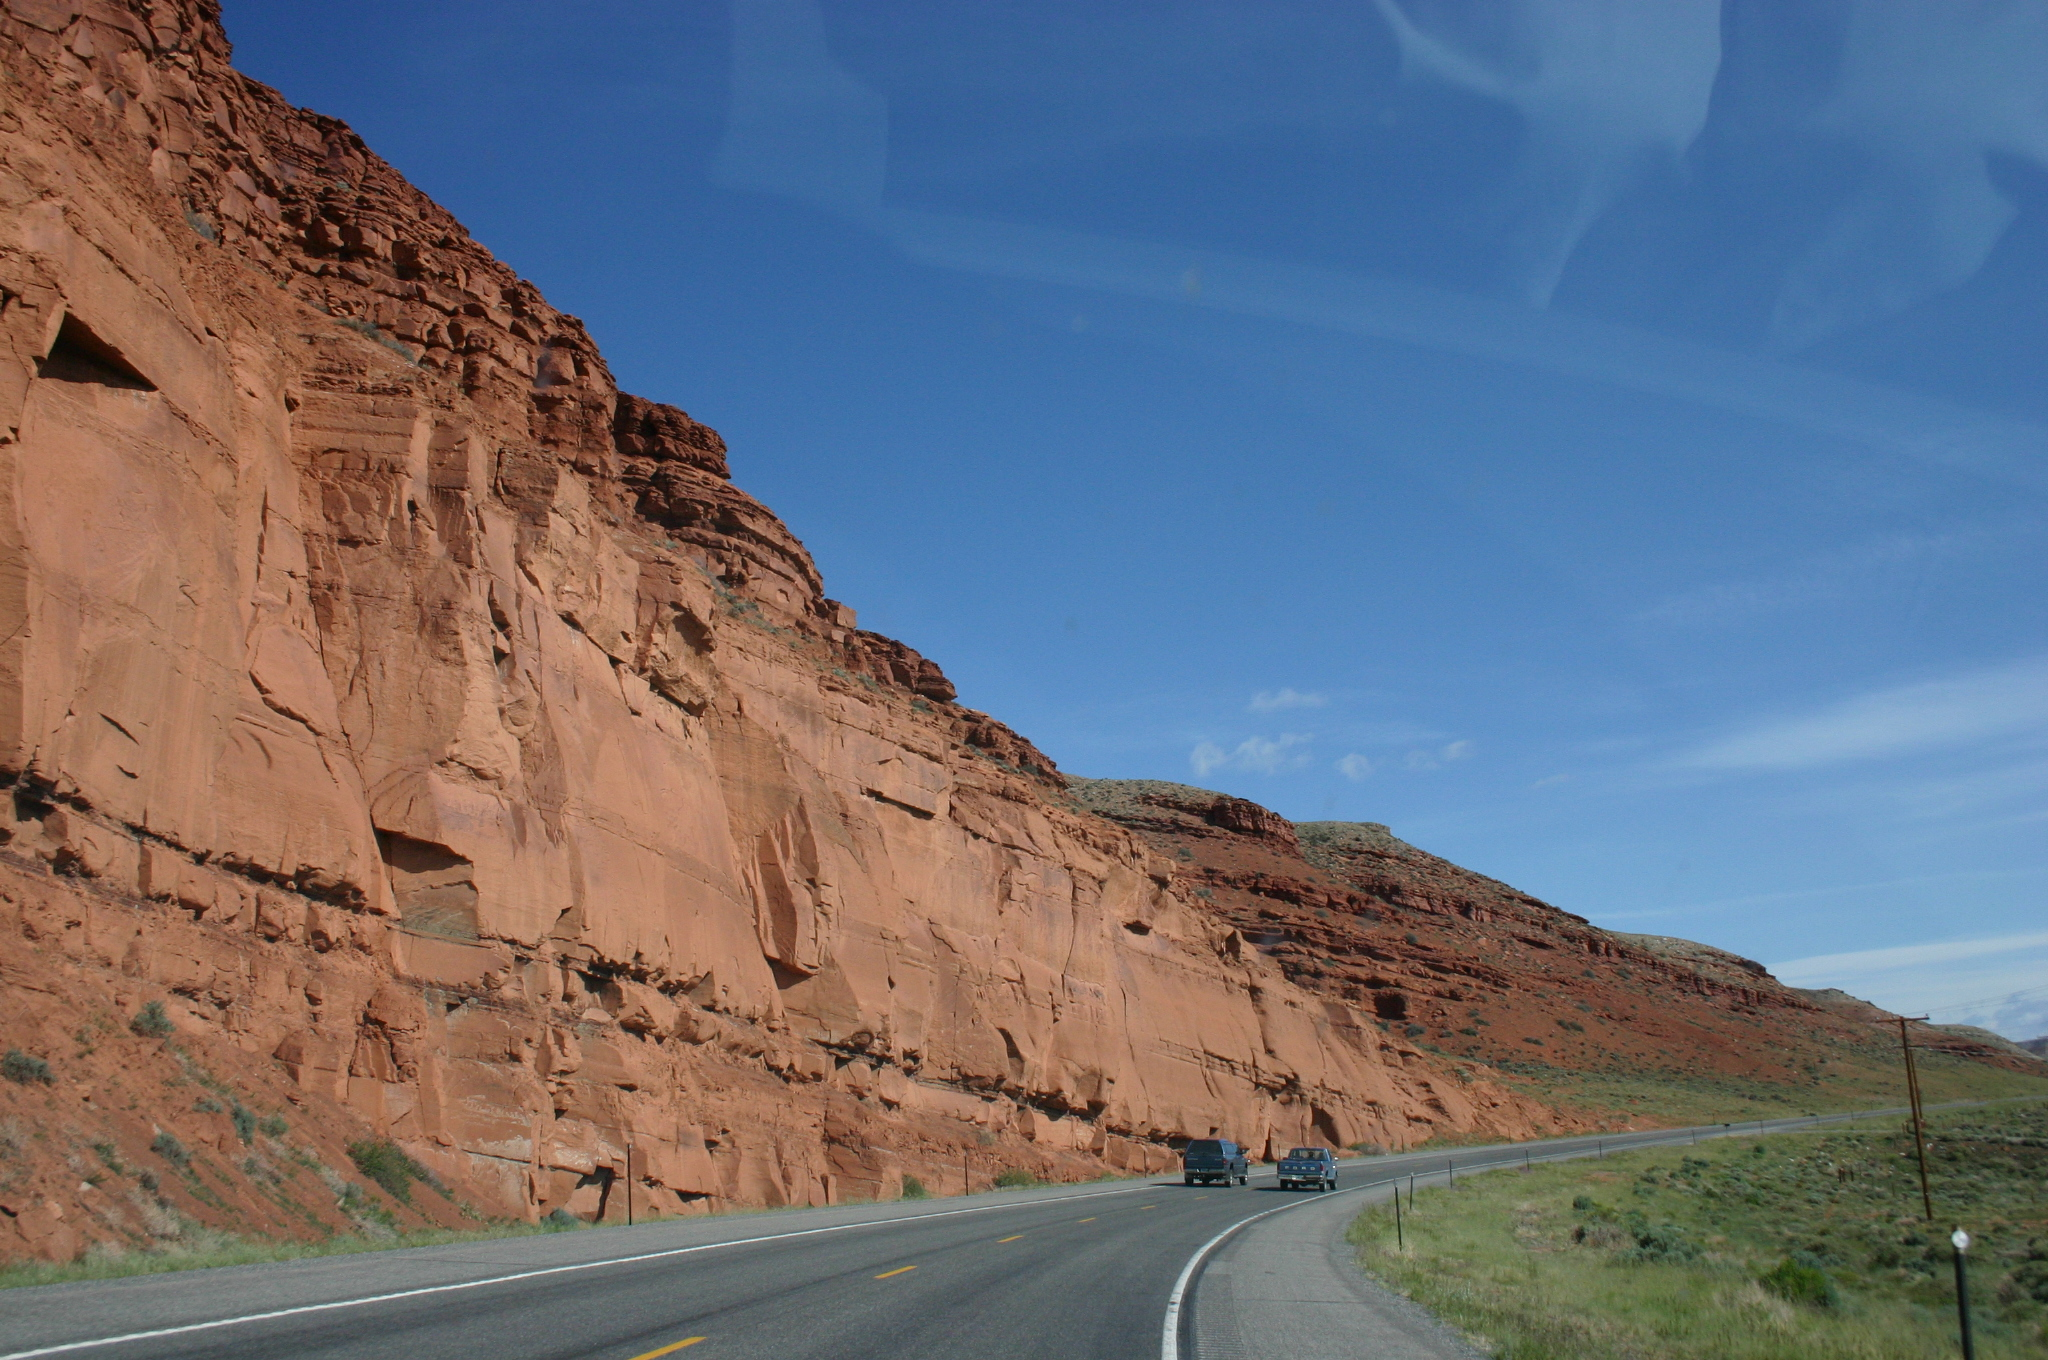 Red_Cliff_along_US287_between_Lander_and_Dubois_in_Wyoming